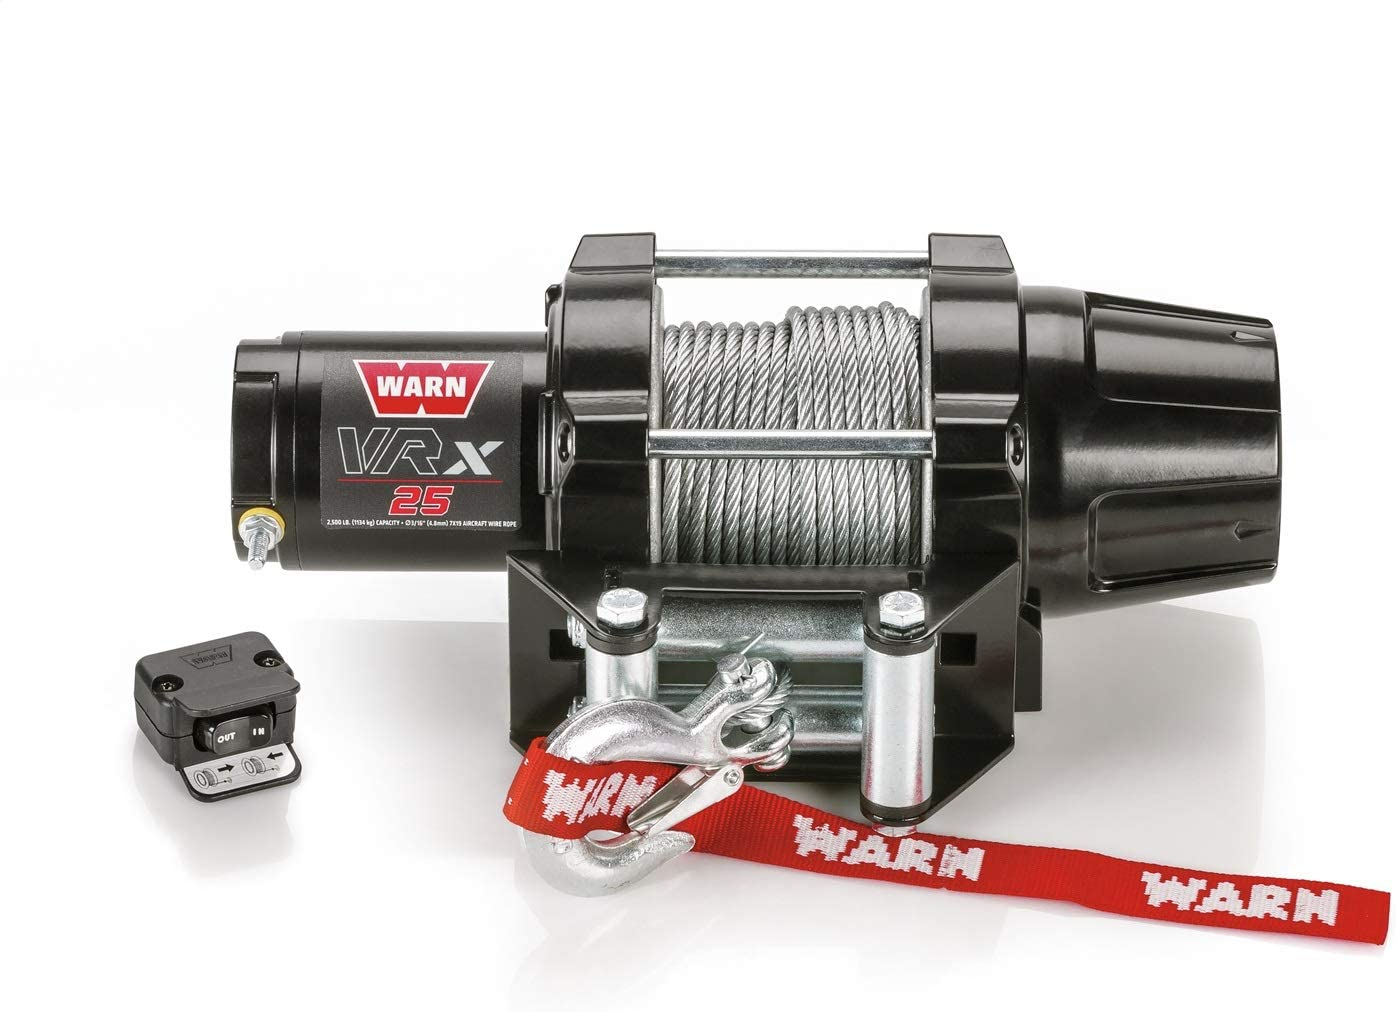 WARN 101025 VRX 25 Powersports Winch with Handlebar Mounted Switch and Steel Cable Wire Rope: 3/16